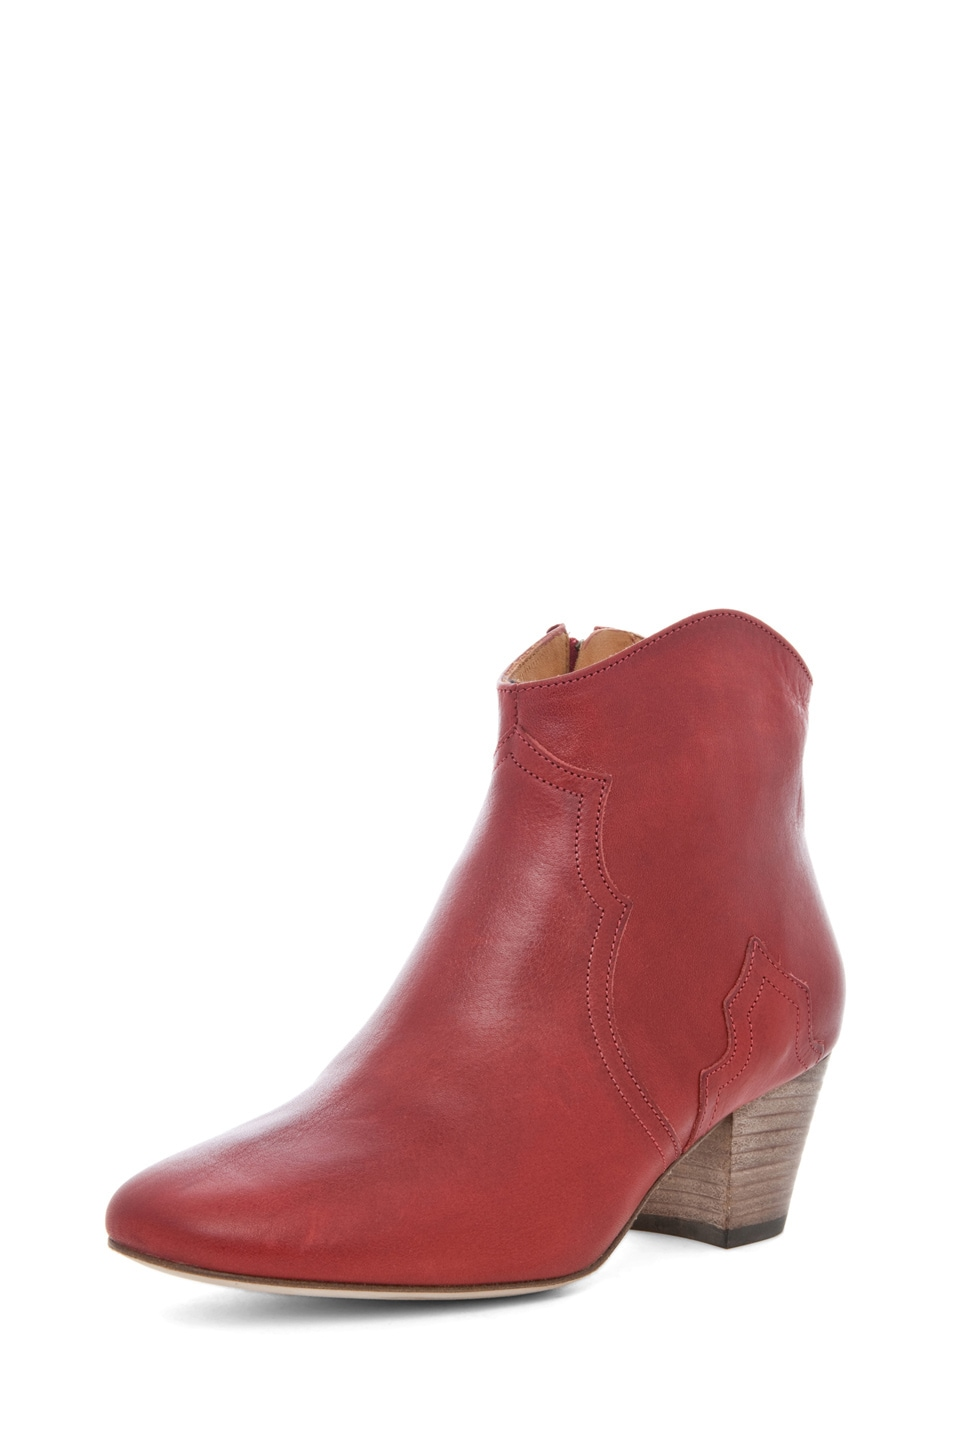 Image 2 of Isabel Marant Dicker Leather Bootie in Bordeaux